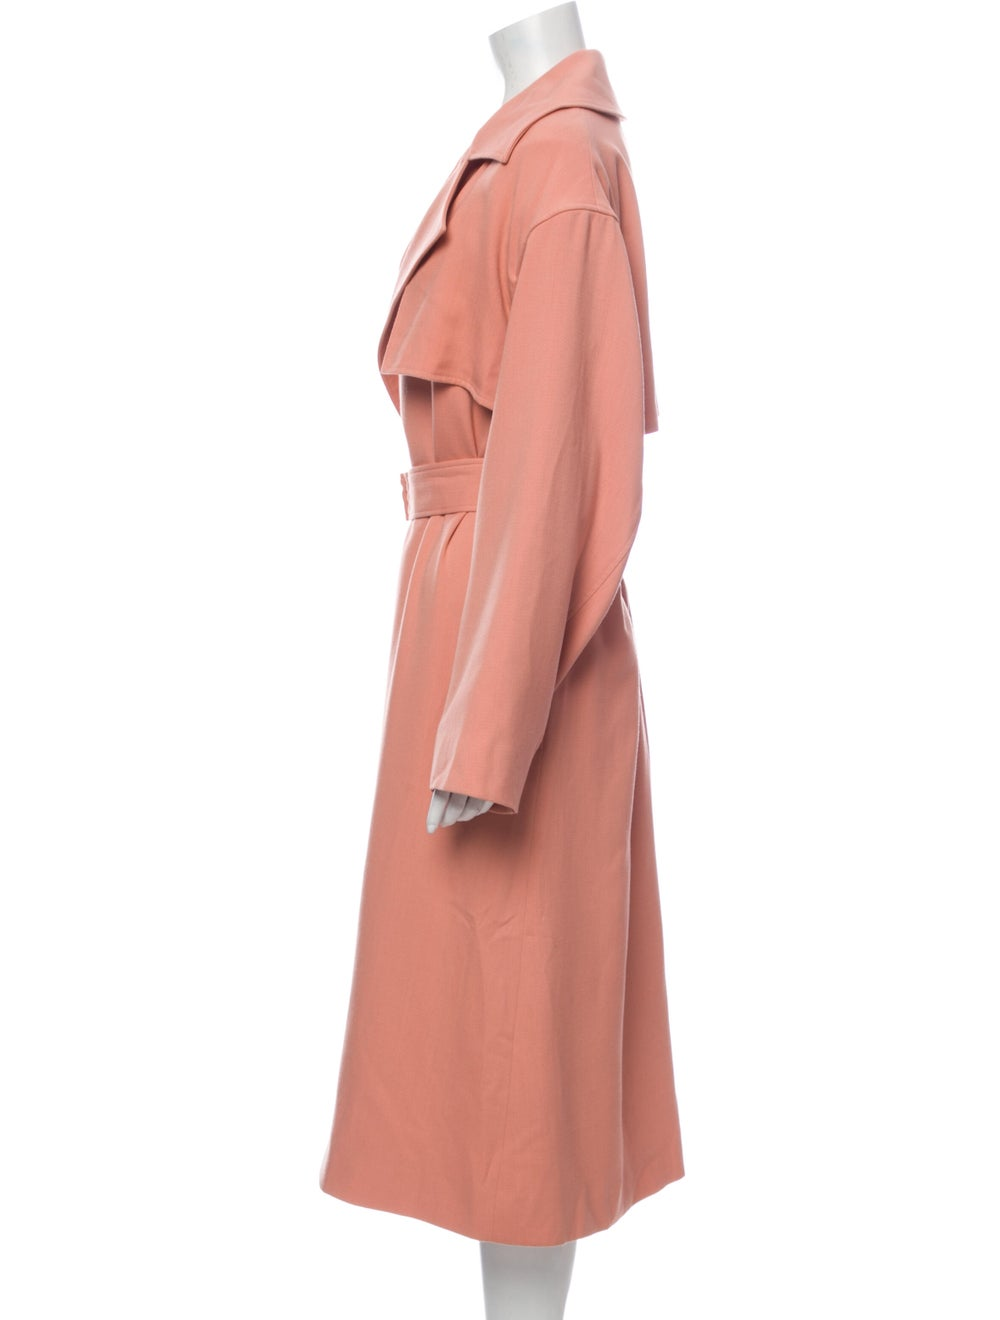 Michelle Waugh Trench Coat Pink - image 2